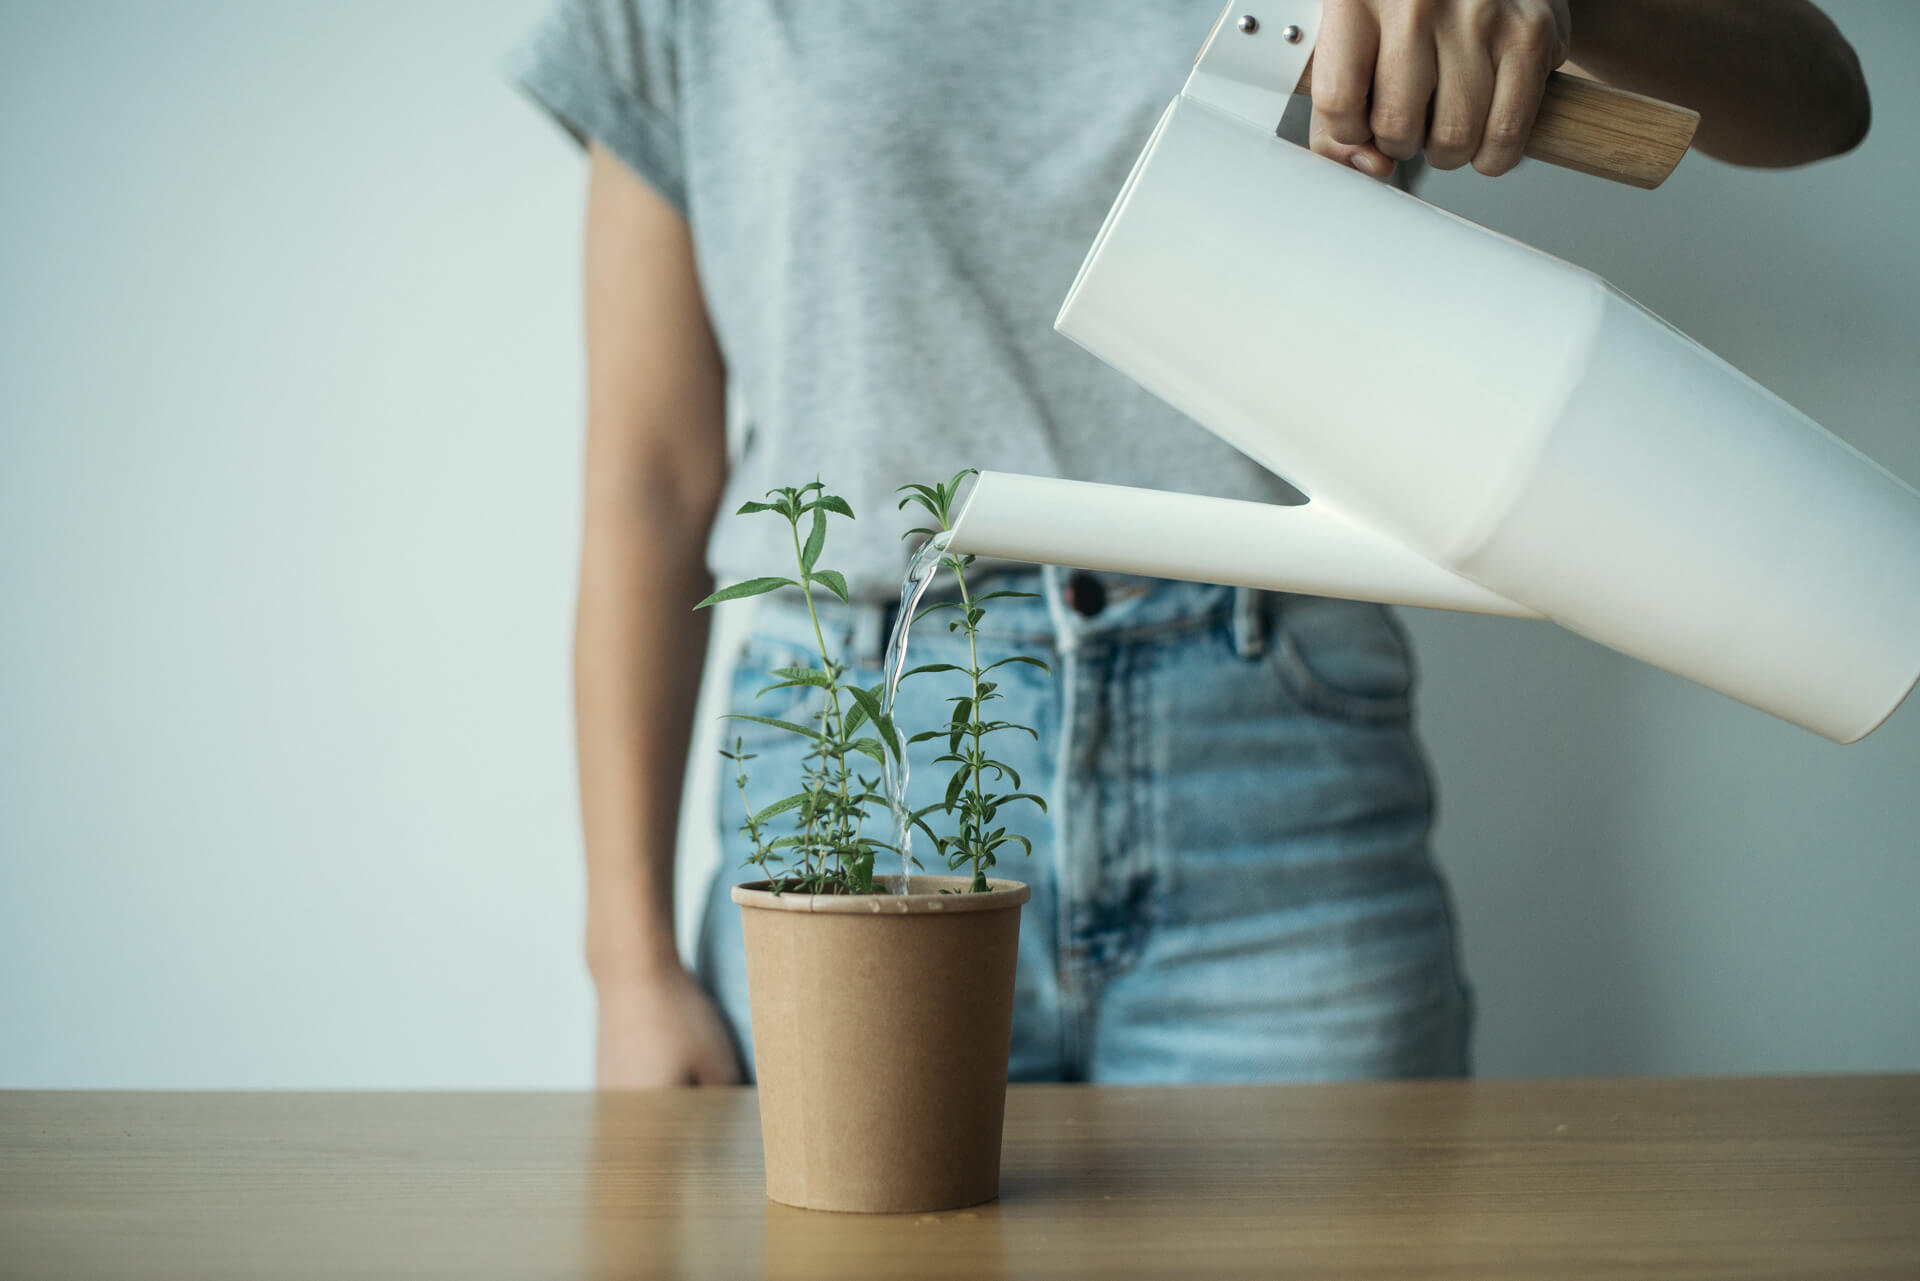 reuse-biodegradable-package-organic-seed-stick-herbs